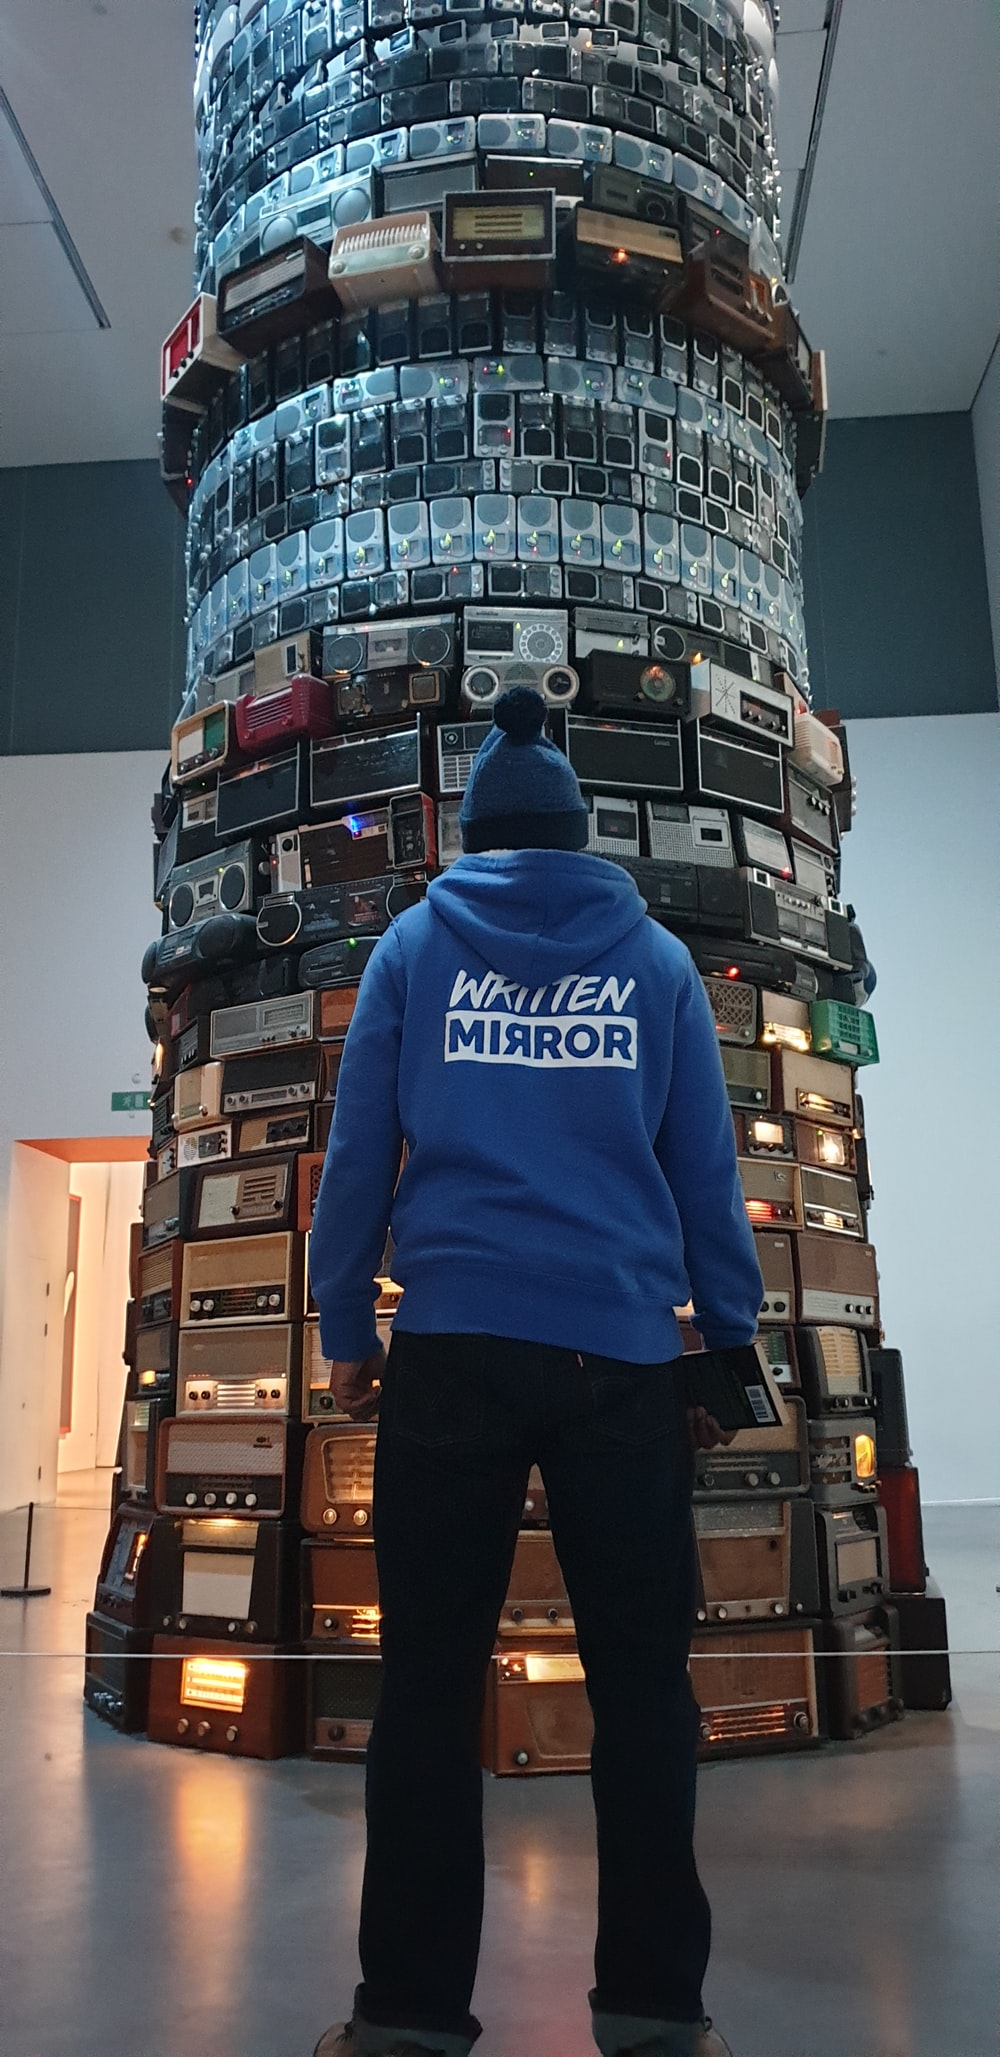 person wearing blue hoodie standing in front of tower